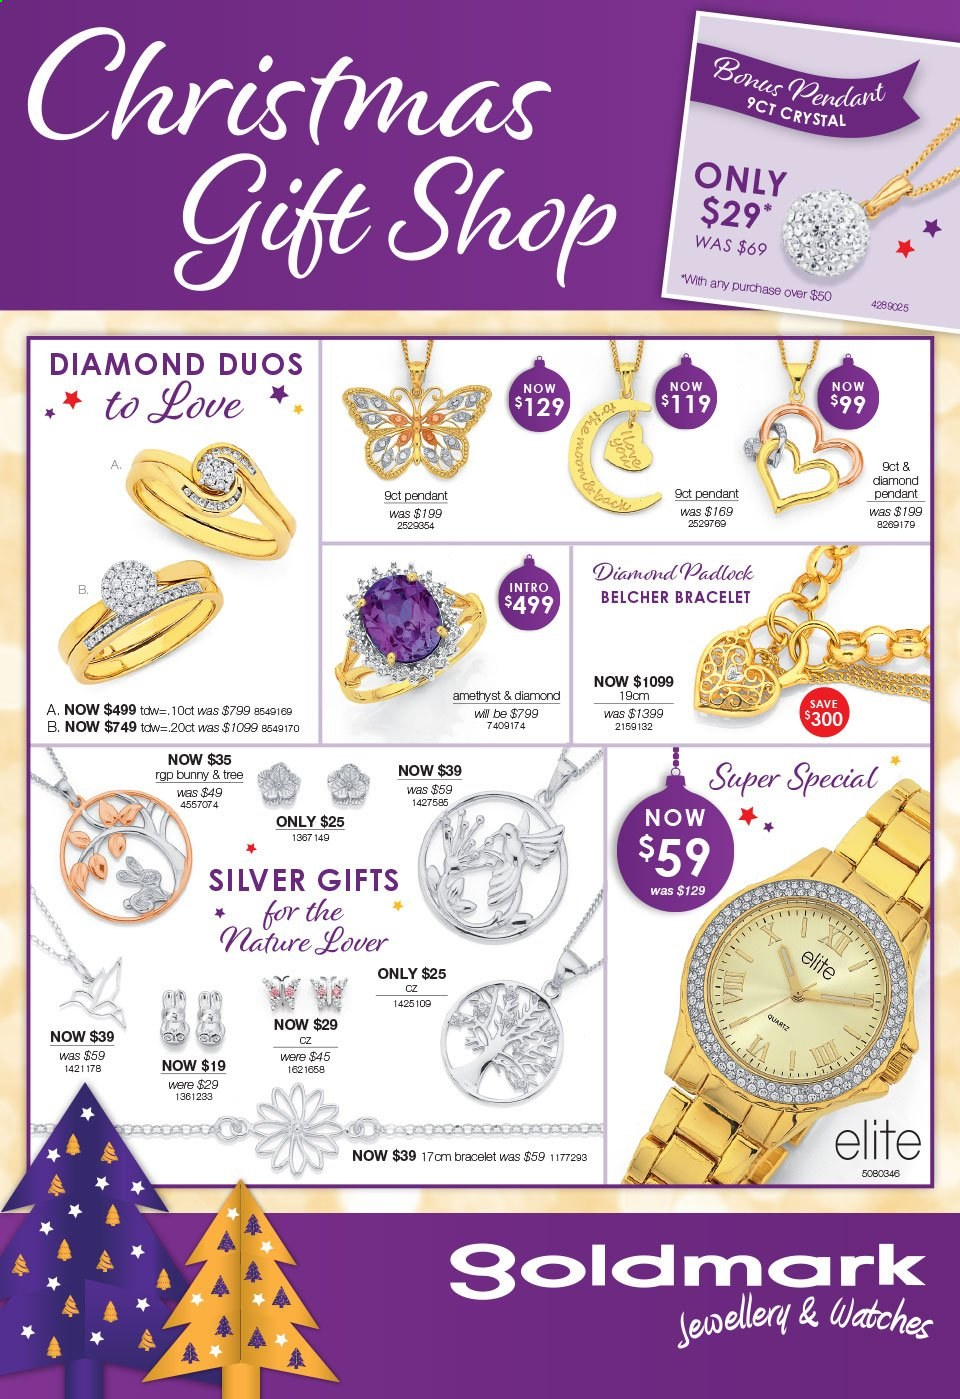 Goldmark mailer - 16.11.2020 - 24.12.2020 - Sales products - bracelet, tree, watch, pendant. Page 1.